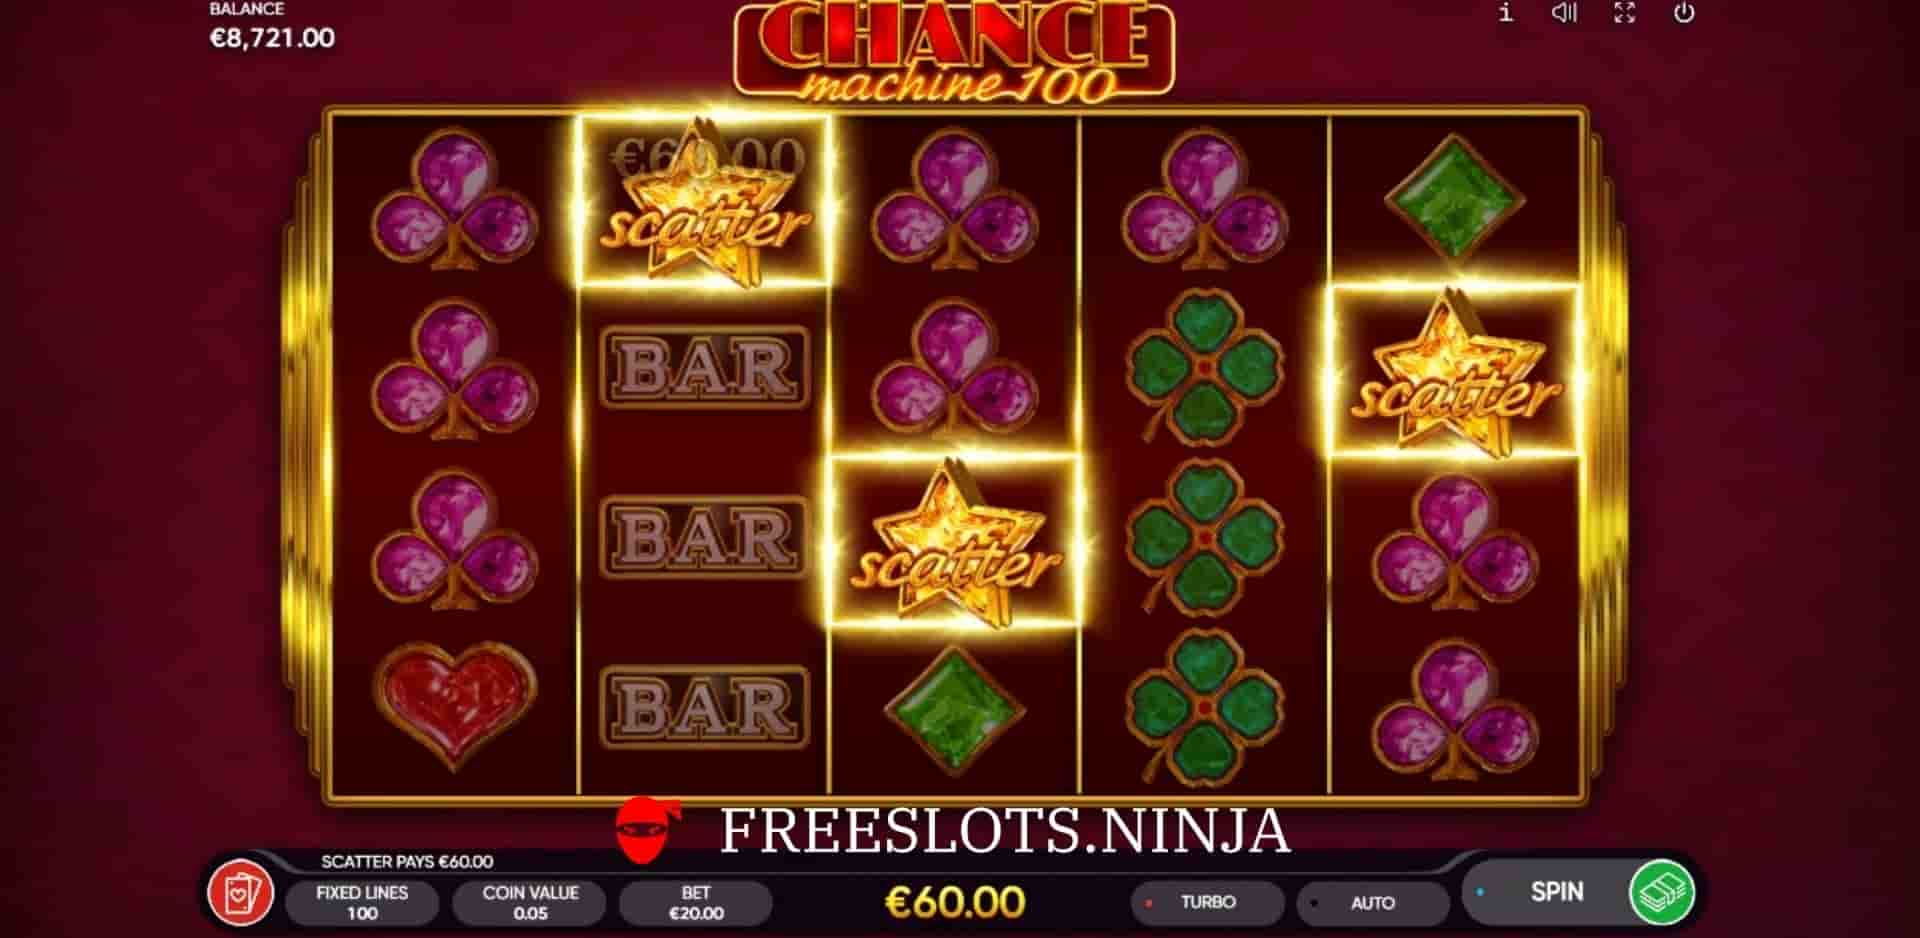 chance machine 100 slot scatters